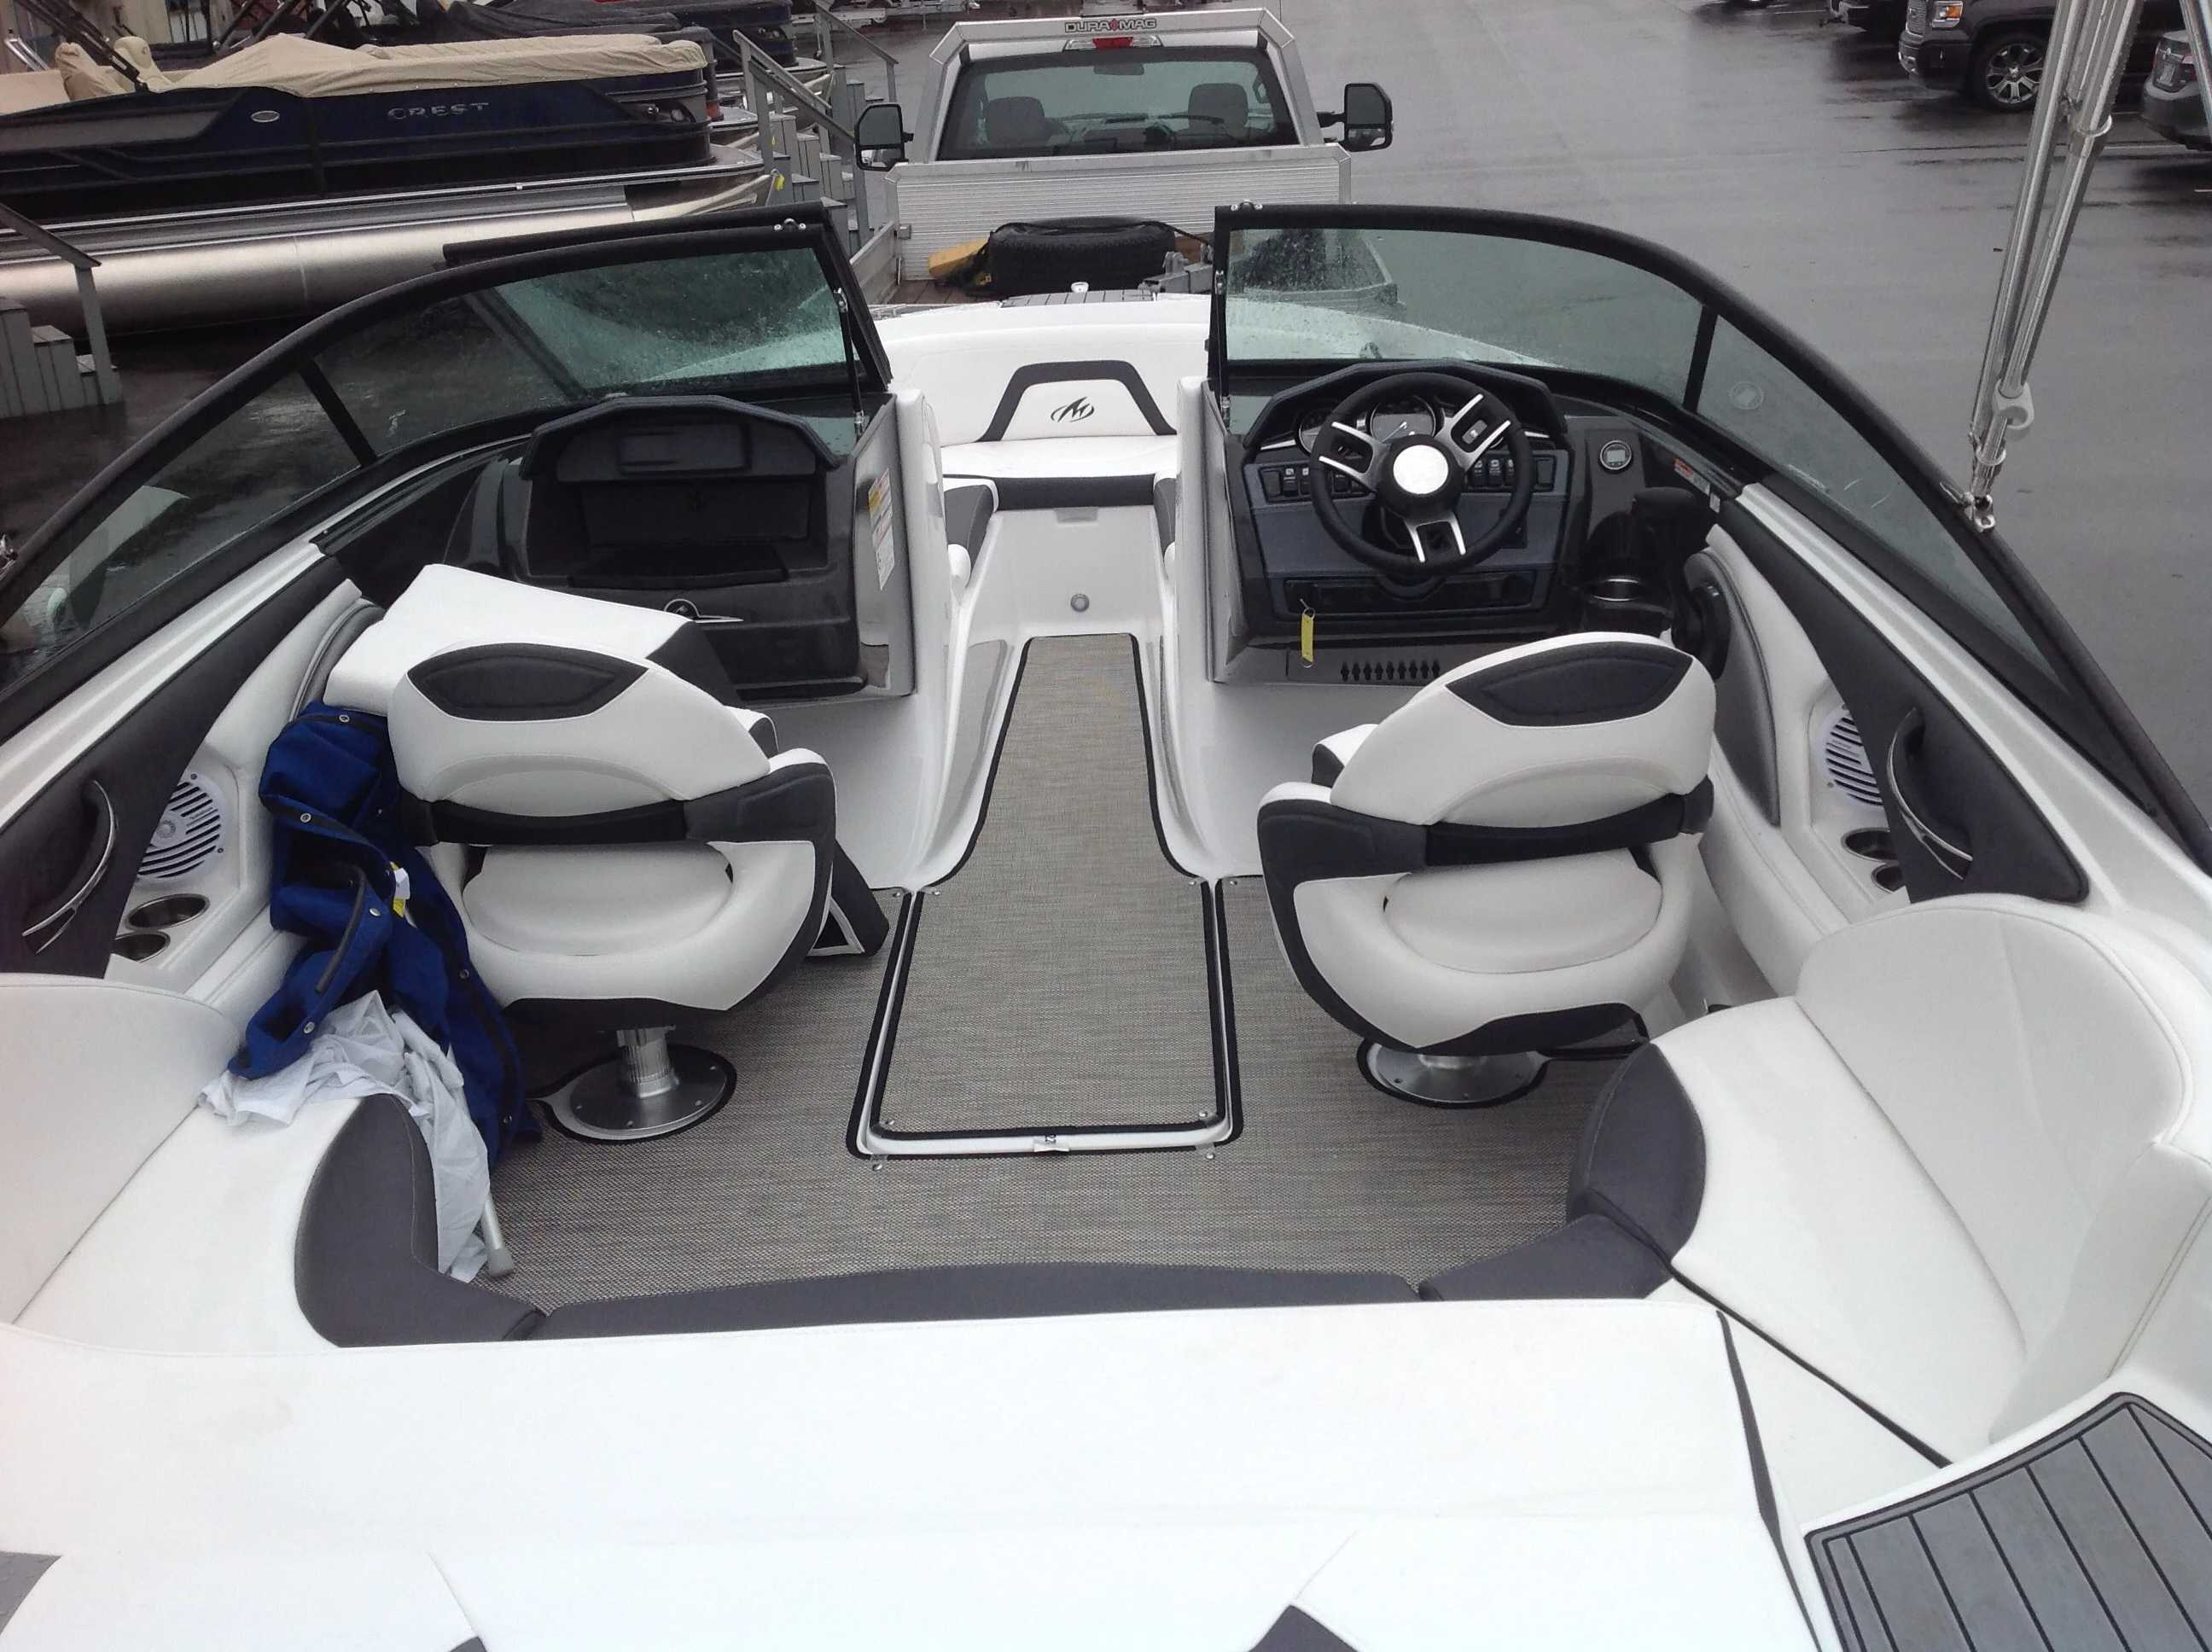 2022 Monterey boat for sale, model of the boat is 224FS & Image # 10 of 12